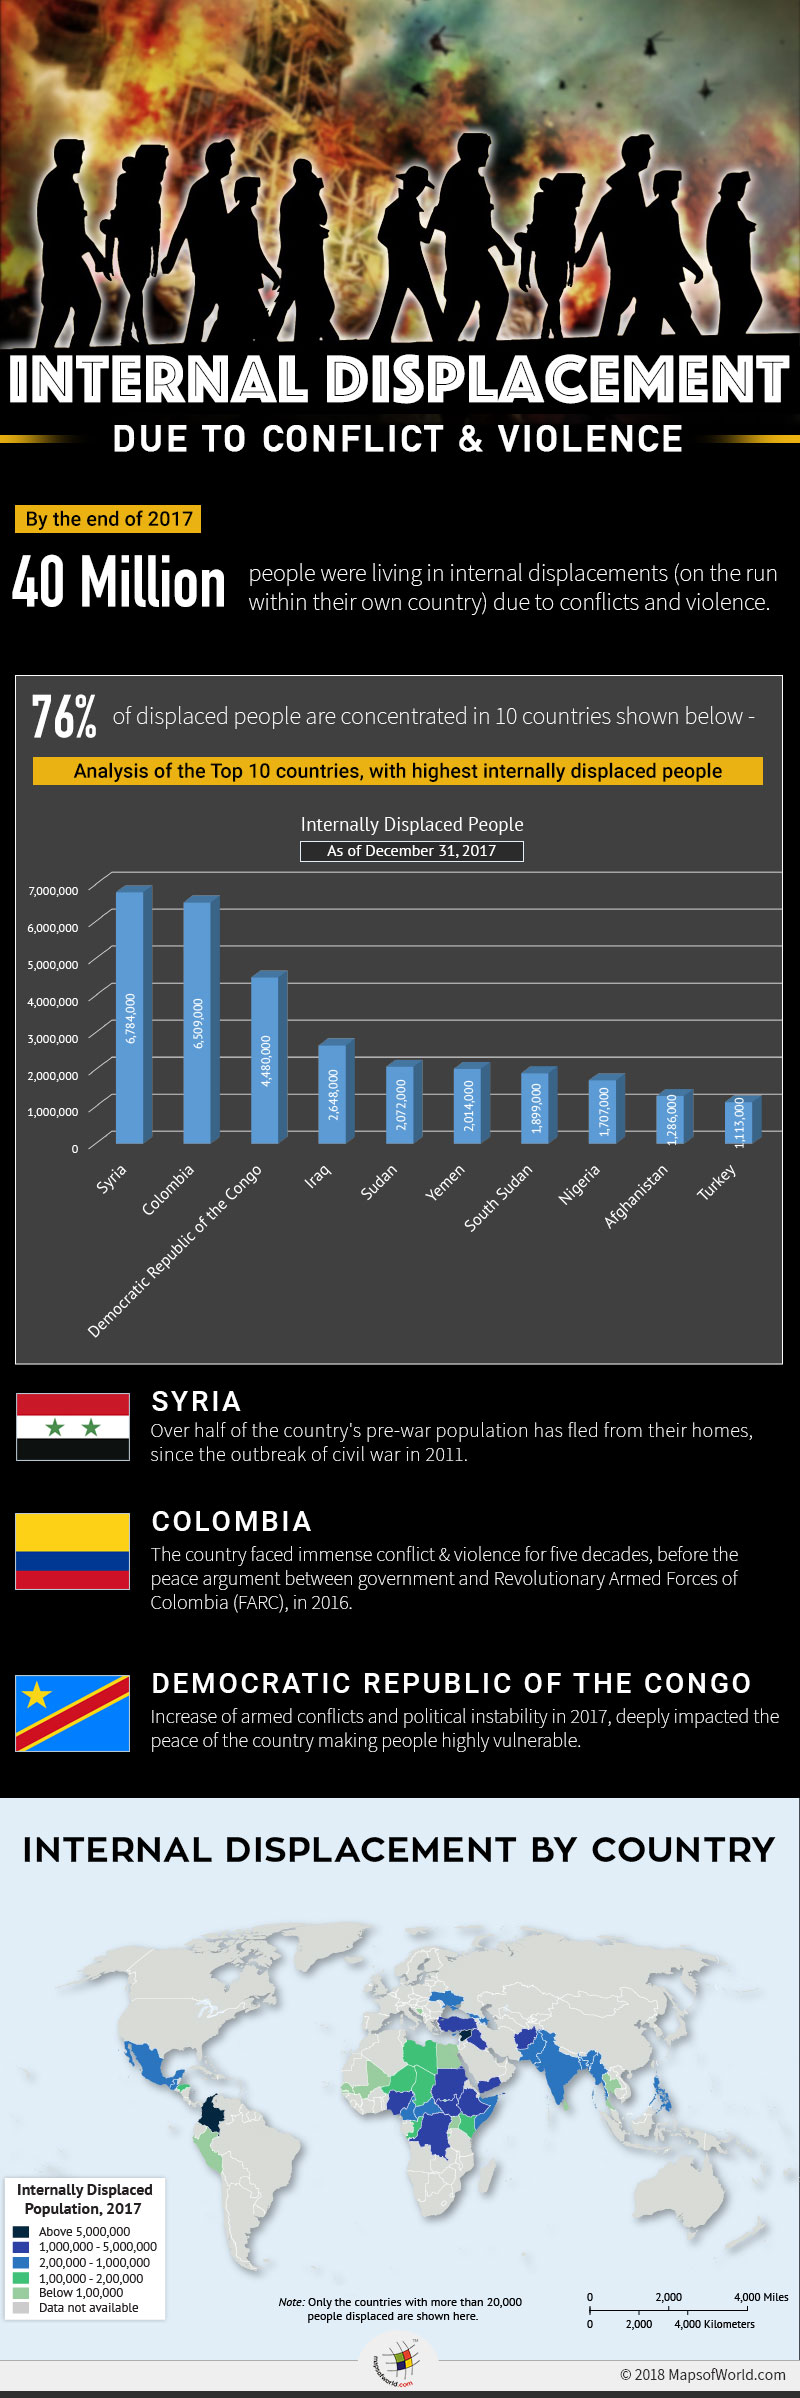 Infographic highlighting the issue of Internal Displacement in countries